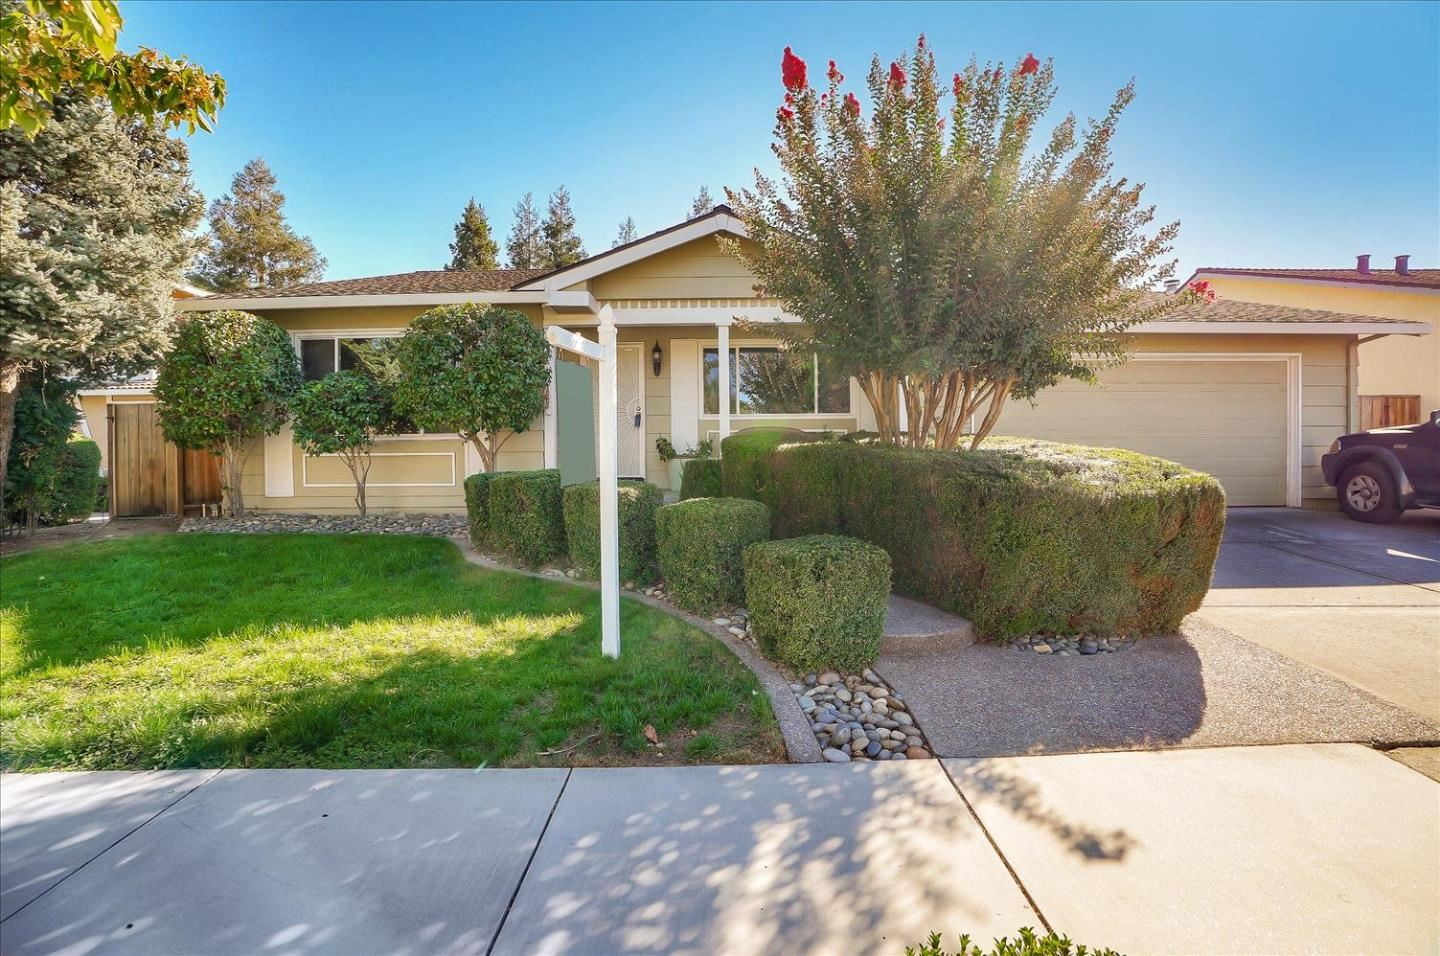 Photo for 1444 Blackwing WAY, GILROY, CA 95020 (MLS # ML81812162)